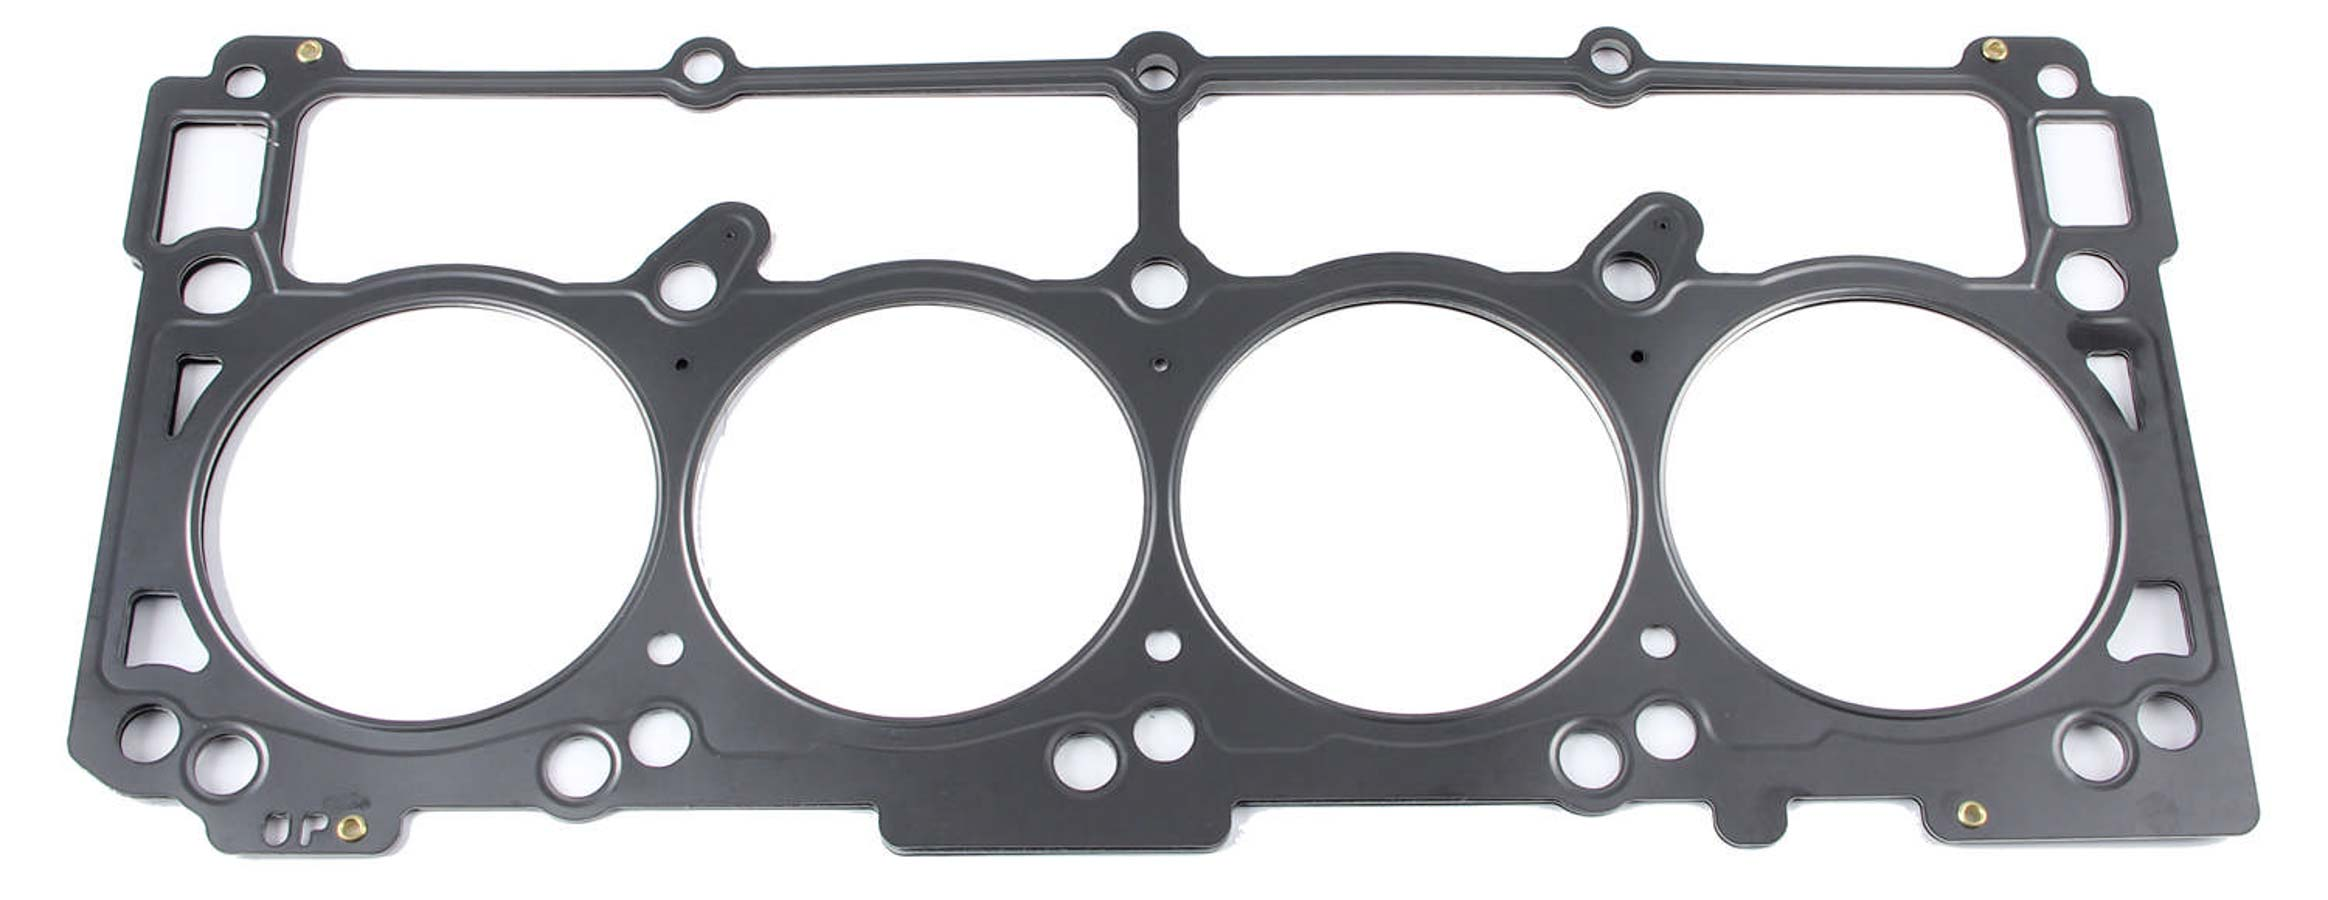 """Cometic Gasket C5871-070 .070/"""" MLS HEAD GASKET FORD 351 CLEVELAND 4.100/"""" BORE"""